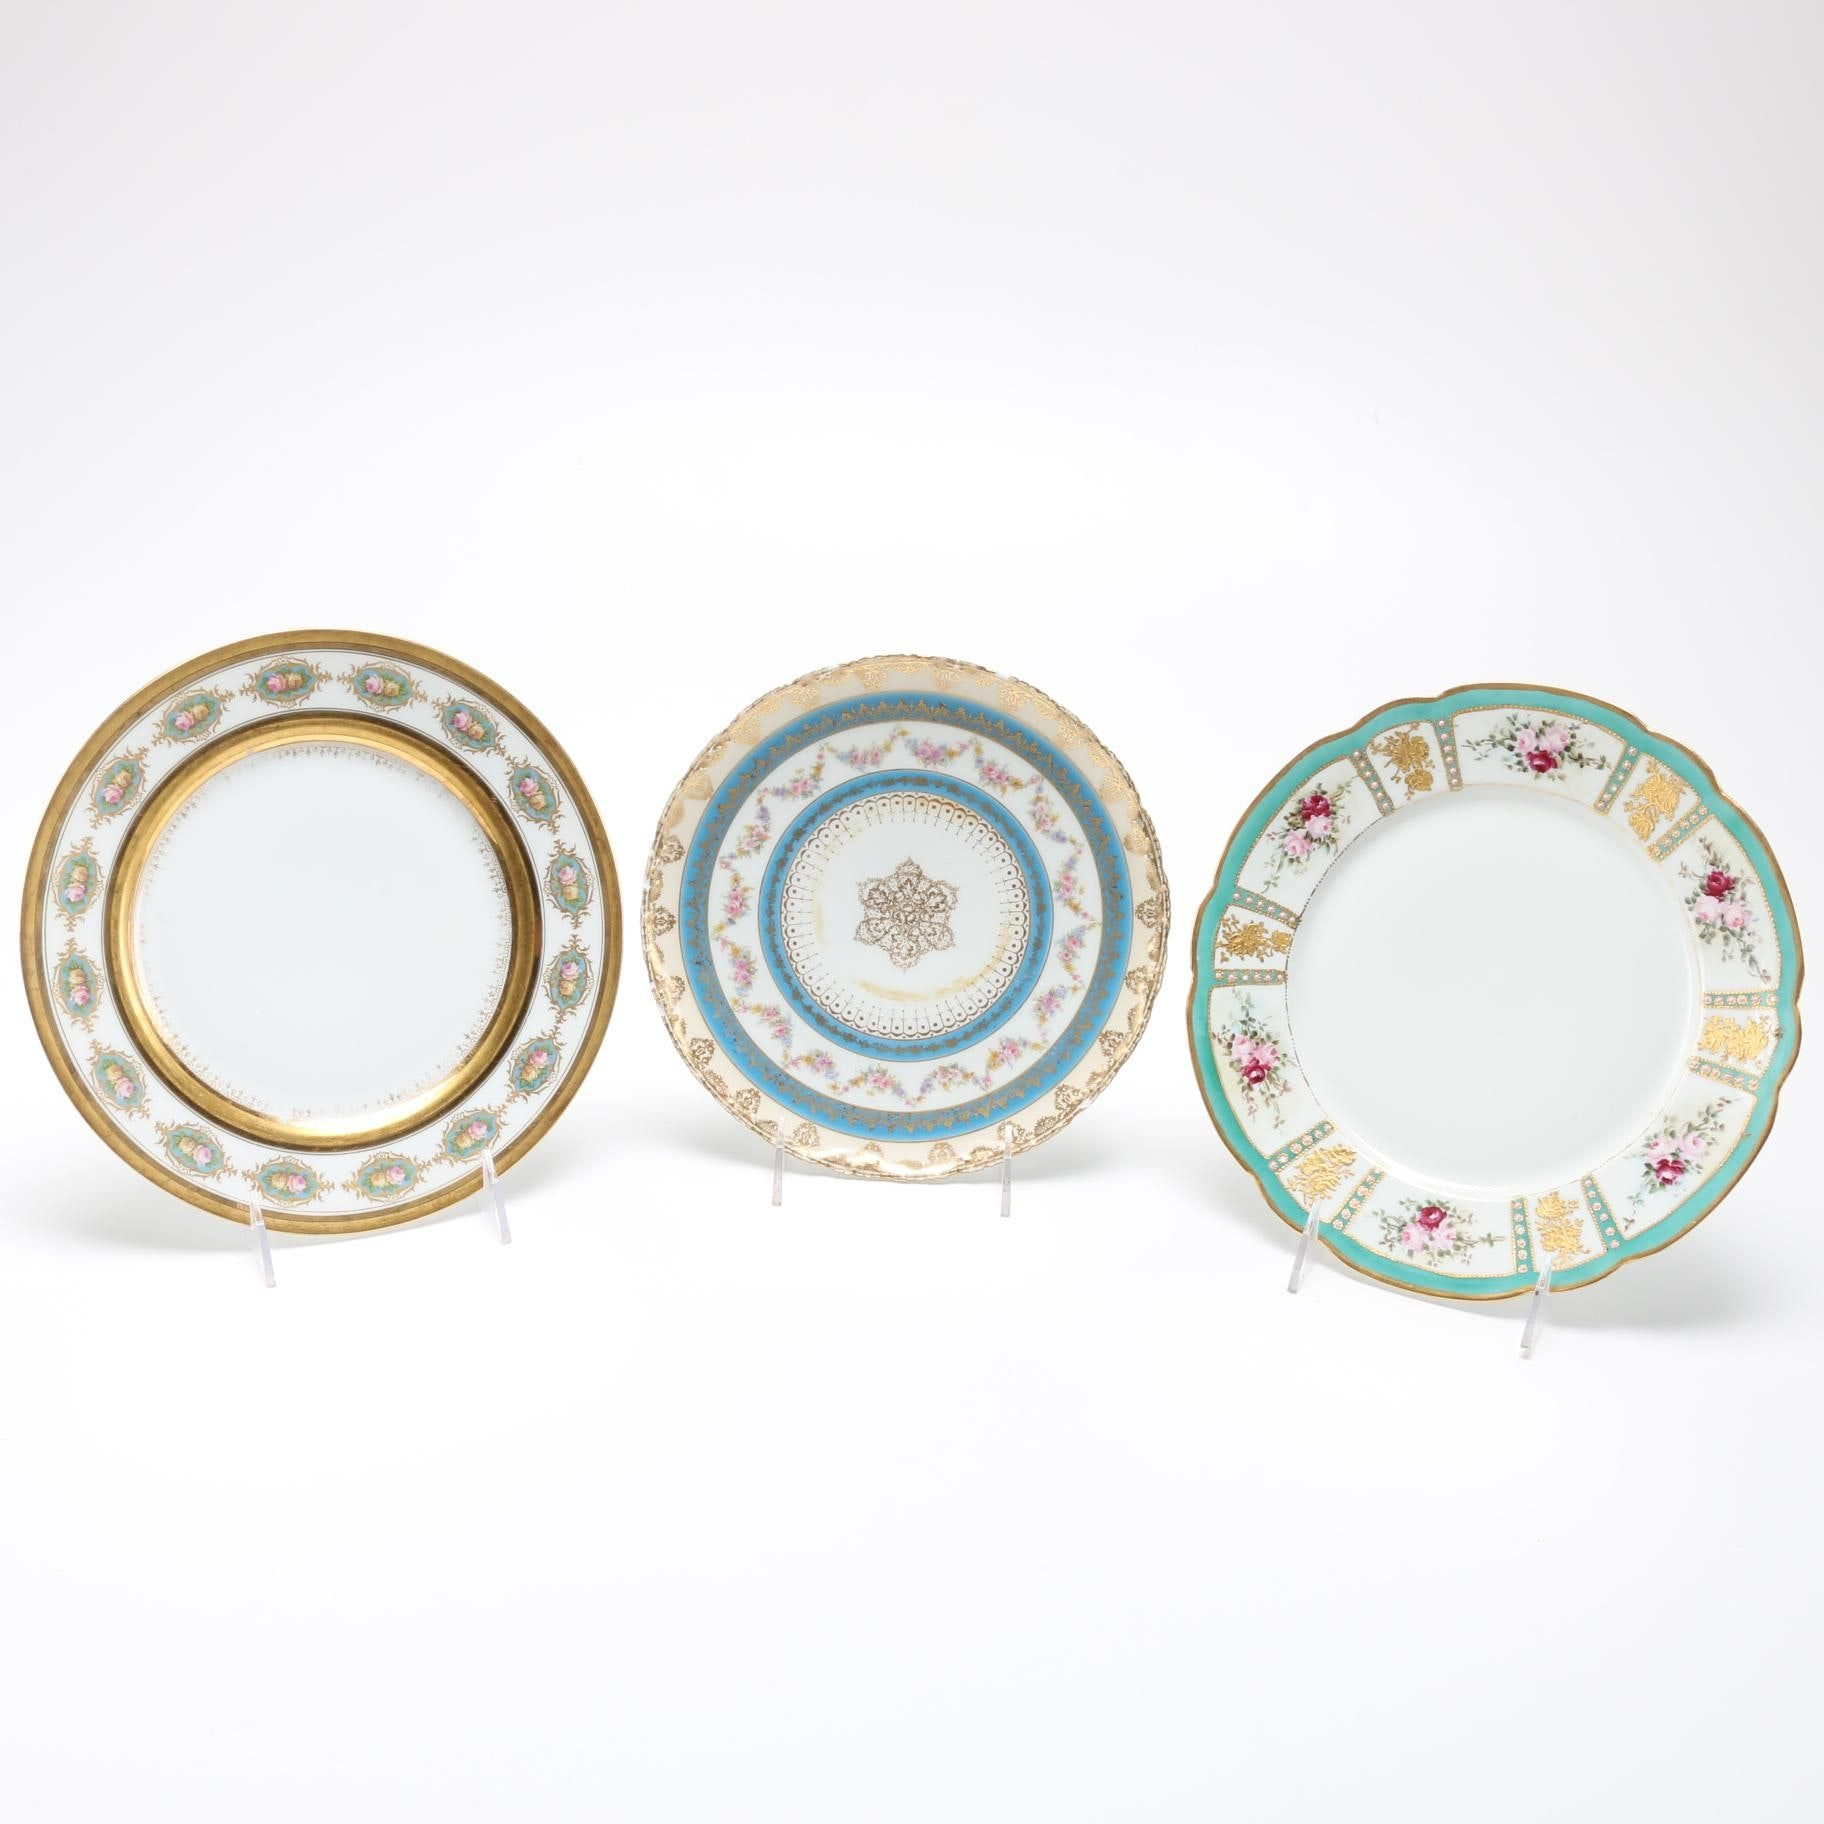 Limoges Plates Featuring Pouyat and Ahrenfeldt